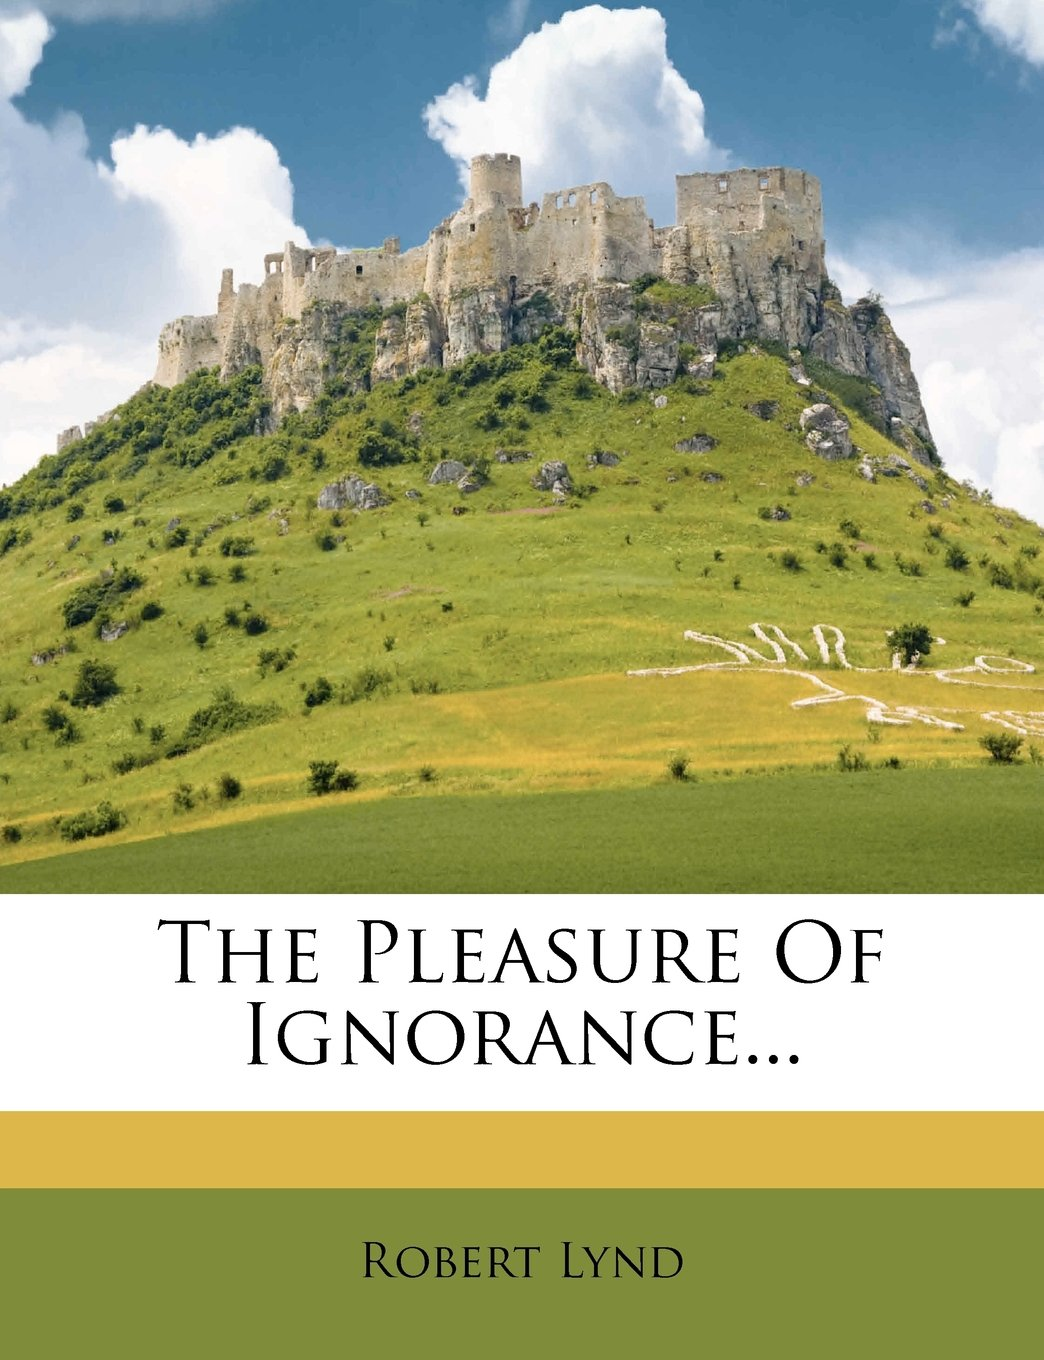 The Pleasure Of Ignorance...: Robert Lynd: 9781276591287: Amazon.com: Books